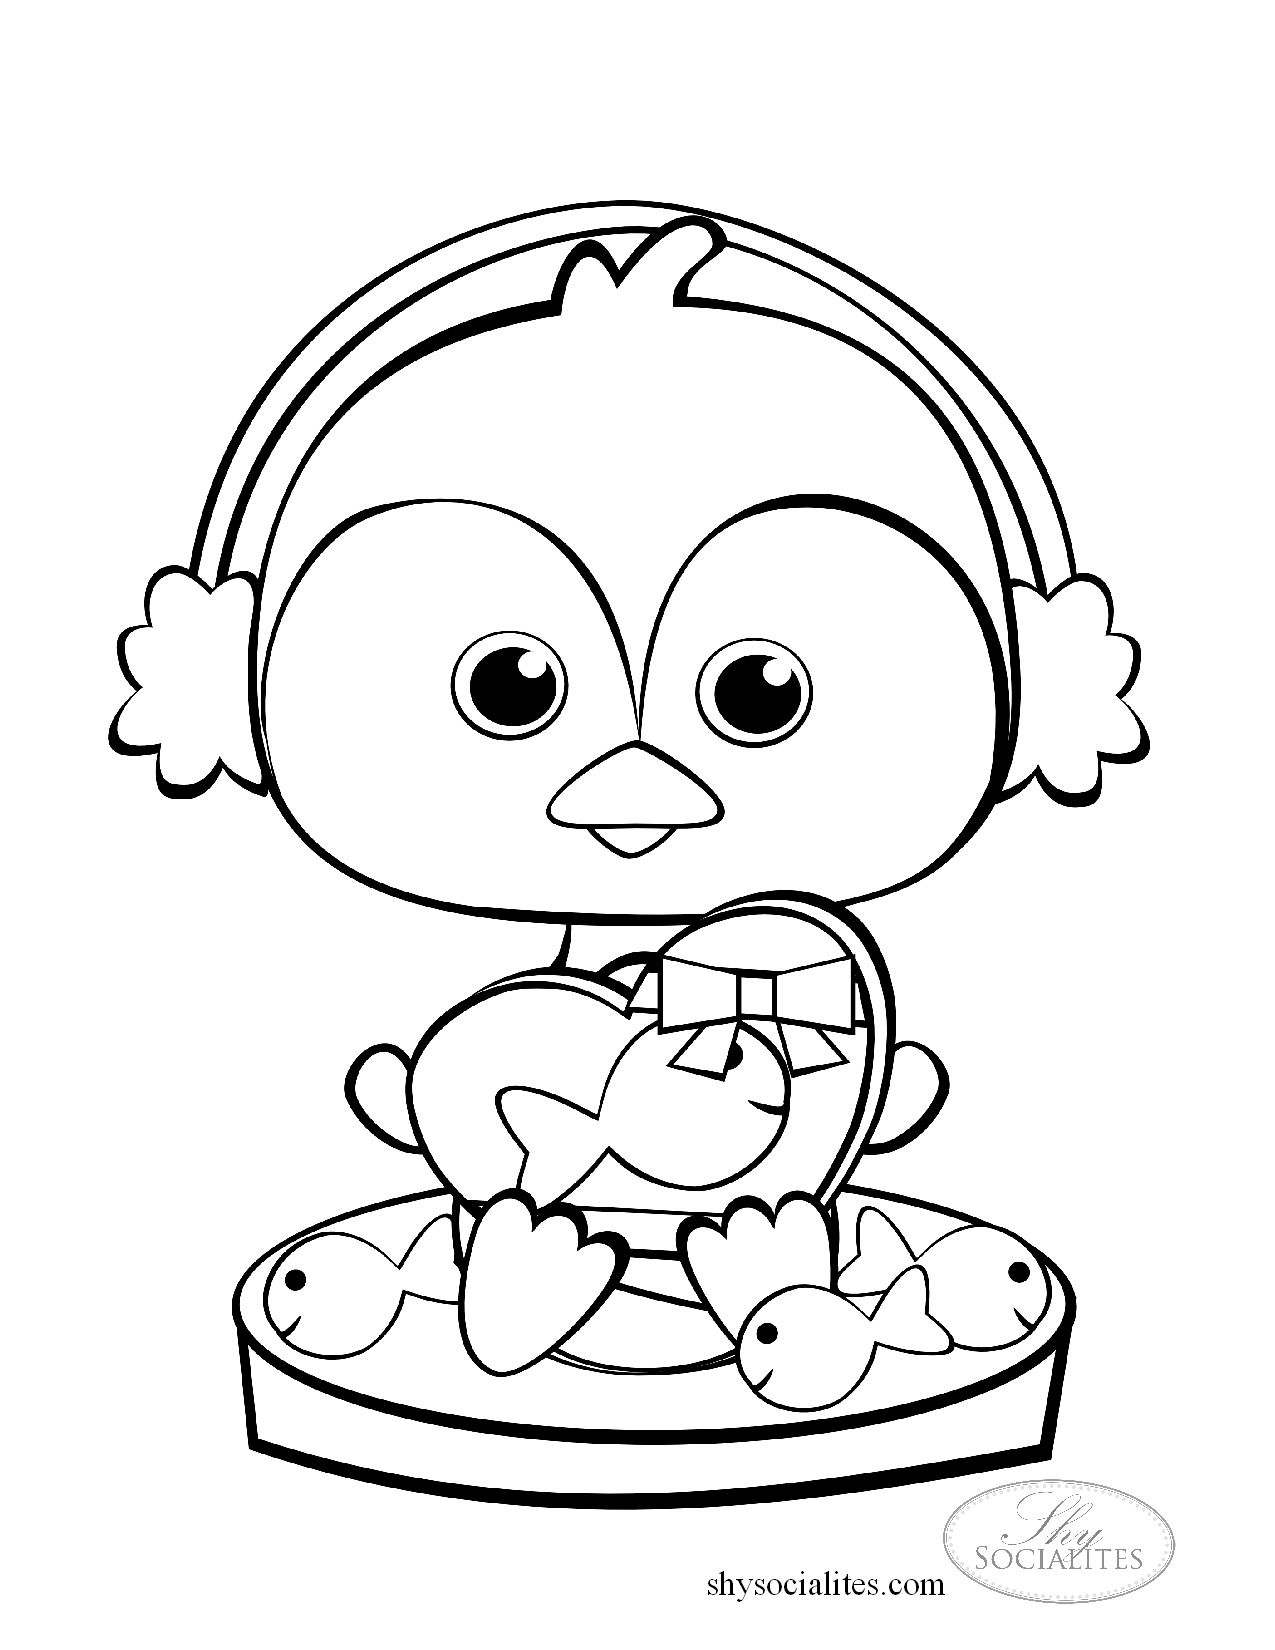 A Cute Little Penguin To Color With A Valentine Gift Of Chocolate Fish Penguin Coloring Penguin Coloring Pages Coloring Pages